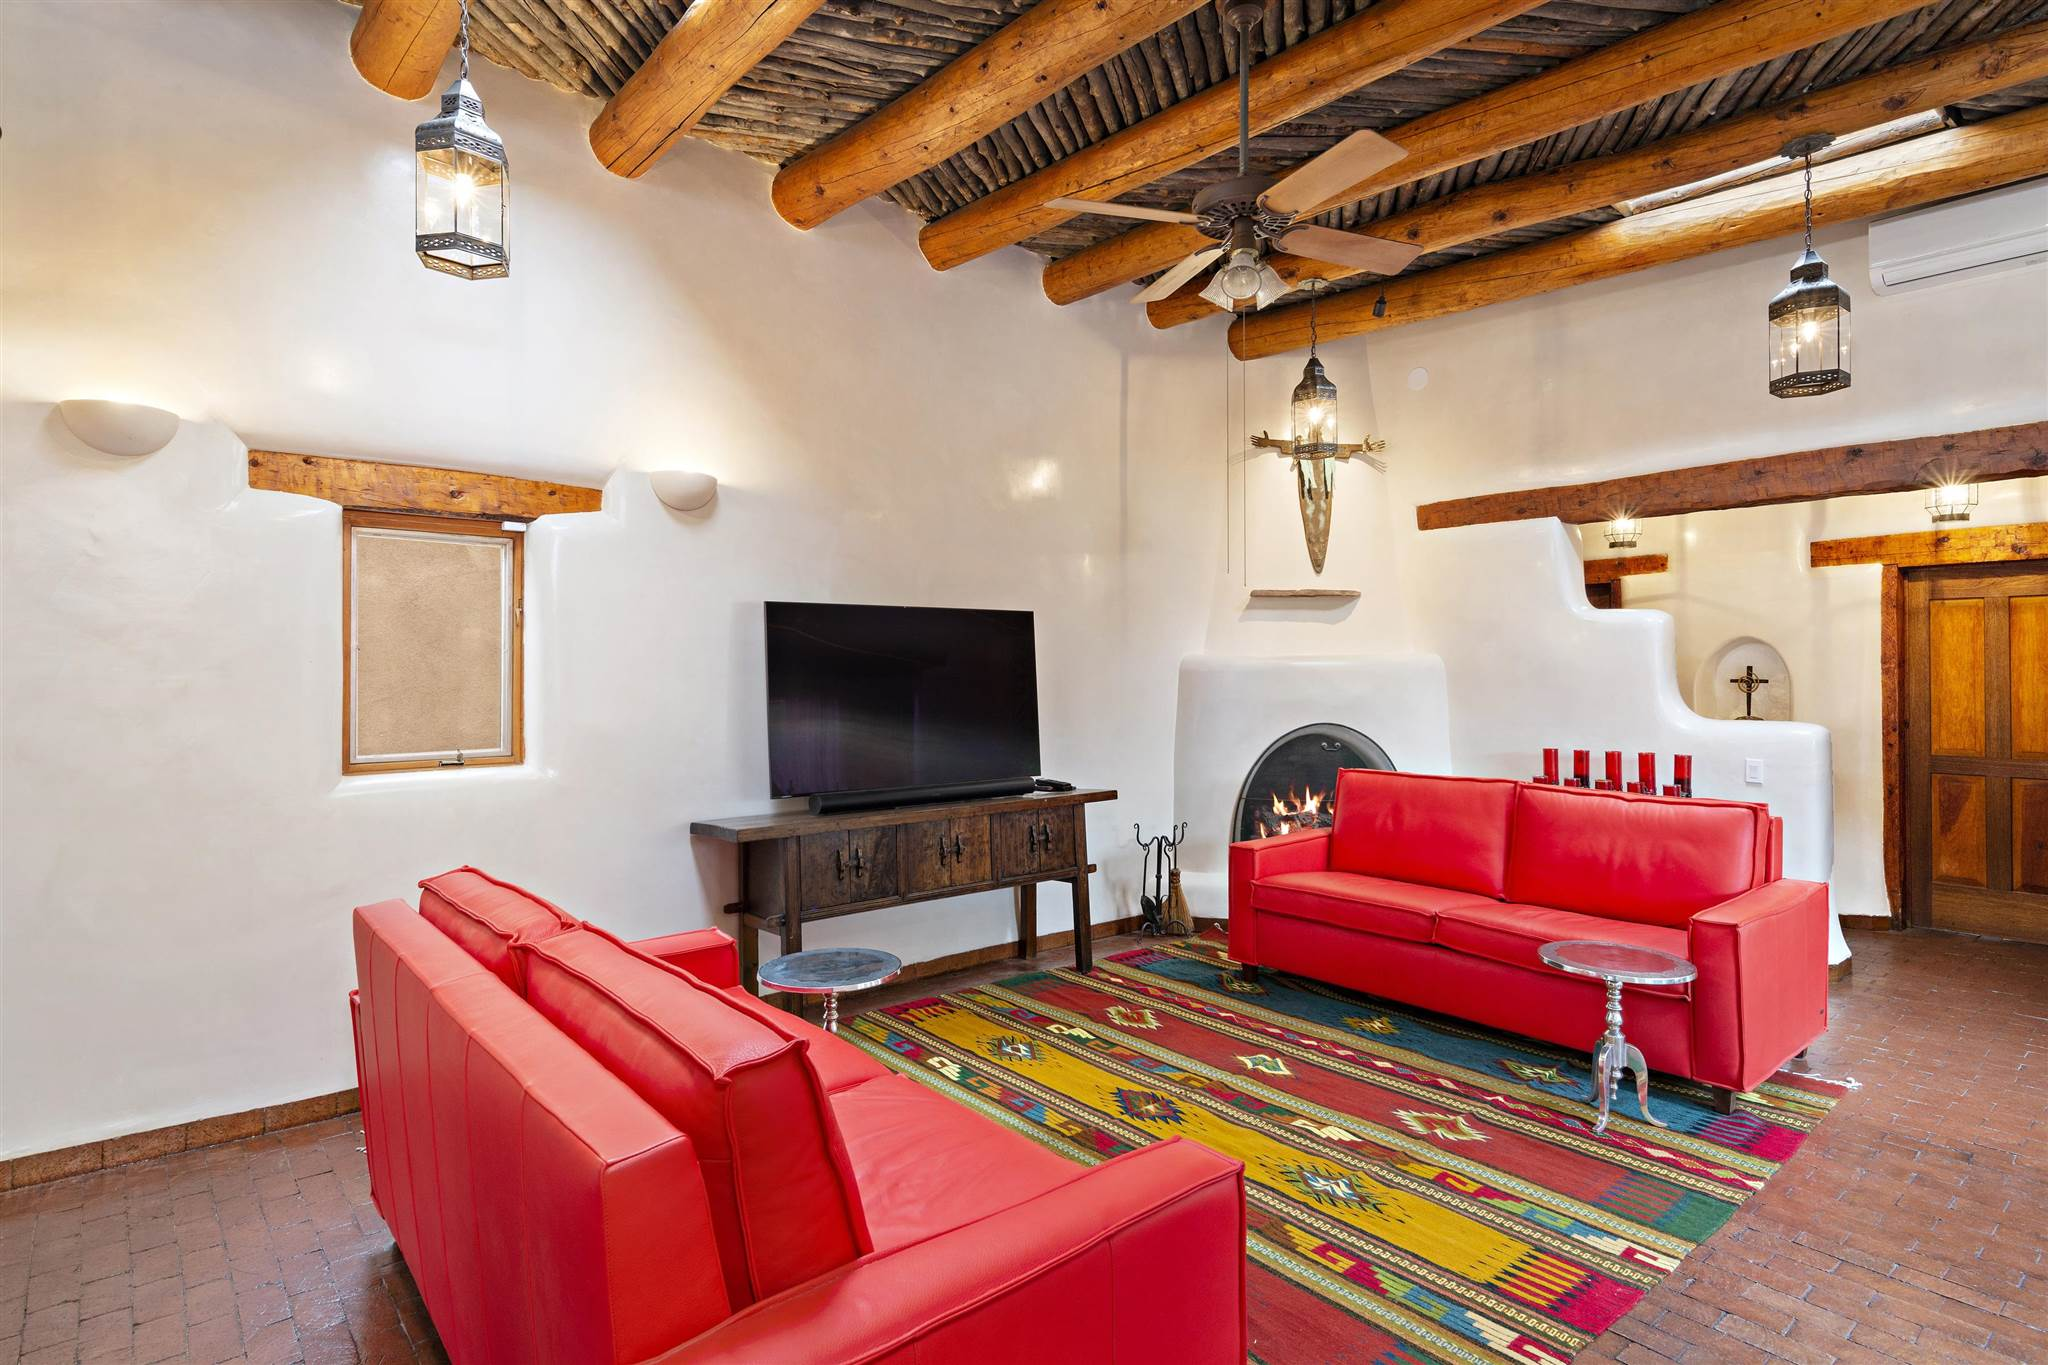 This condo is quintessential Santa Fe/Pueblo style with many recent upgrades. Brand new diamond finish plaster walls, custom carved wood details, high coved ceilings with vigas, and recently refinished brick floors. 2 bedrooms each with en-suite bathroom, open living room and dining room, and delightful Santa Fe style kitchen with sombraje cabinets. Recent upgrades include upgraded electrical wiring and outlets, 3 new mini-splits for heat and cooling, exterior and interior wood treatments, radon mitigation, and security system. Copper-based in-floor radiant heat to keep the house cozy in winter. Reserved carport parking for one car and plenty of on-street parking for guests. Walk to SantaCafe and the Plaza in only a few minutes! Gorgeous private patio with apricot tree and grapevines.